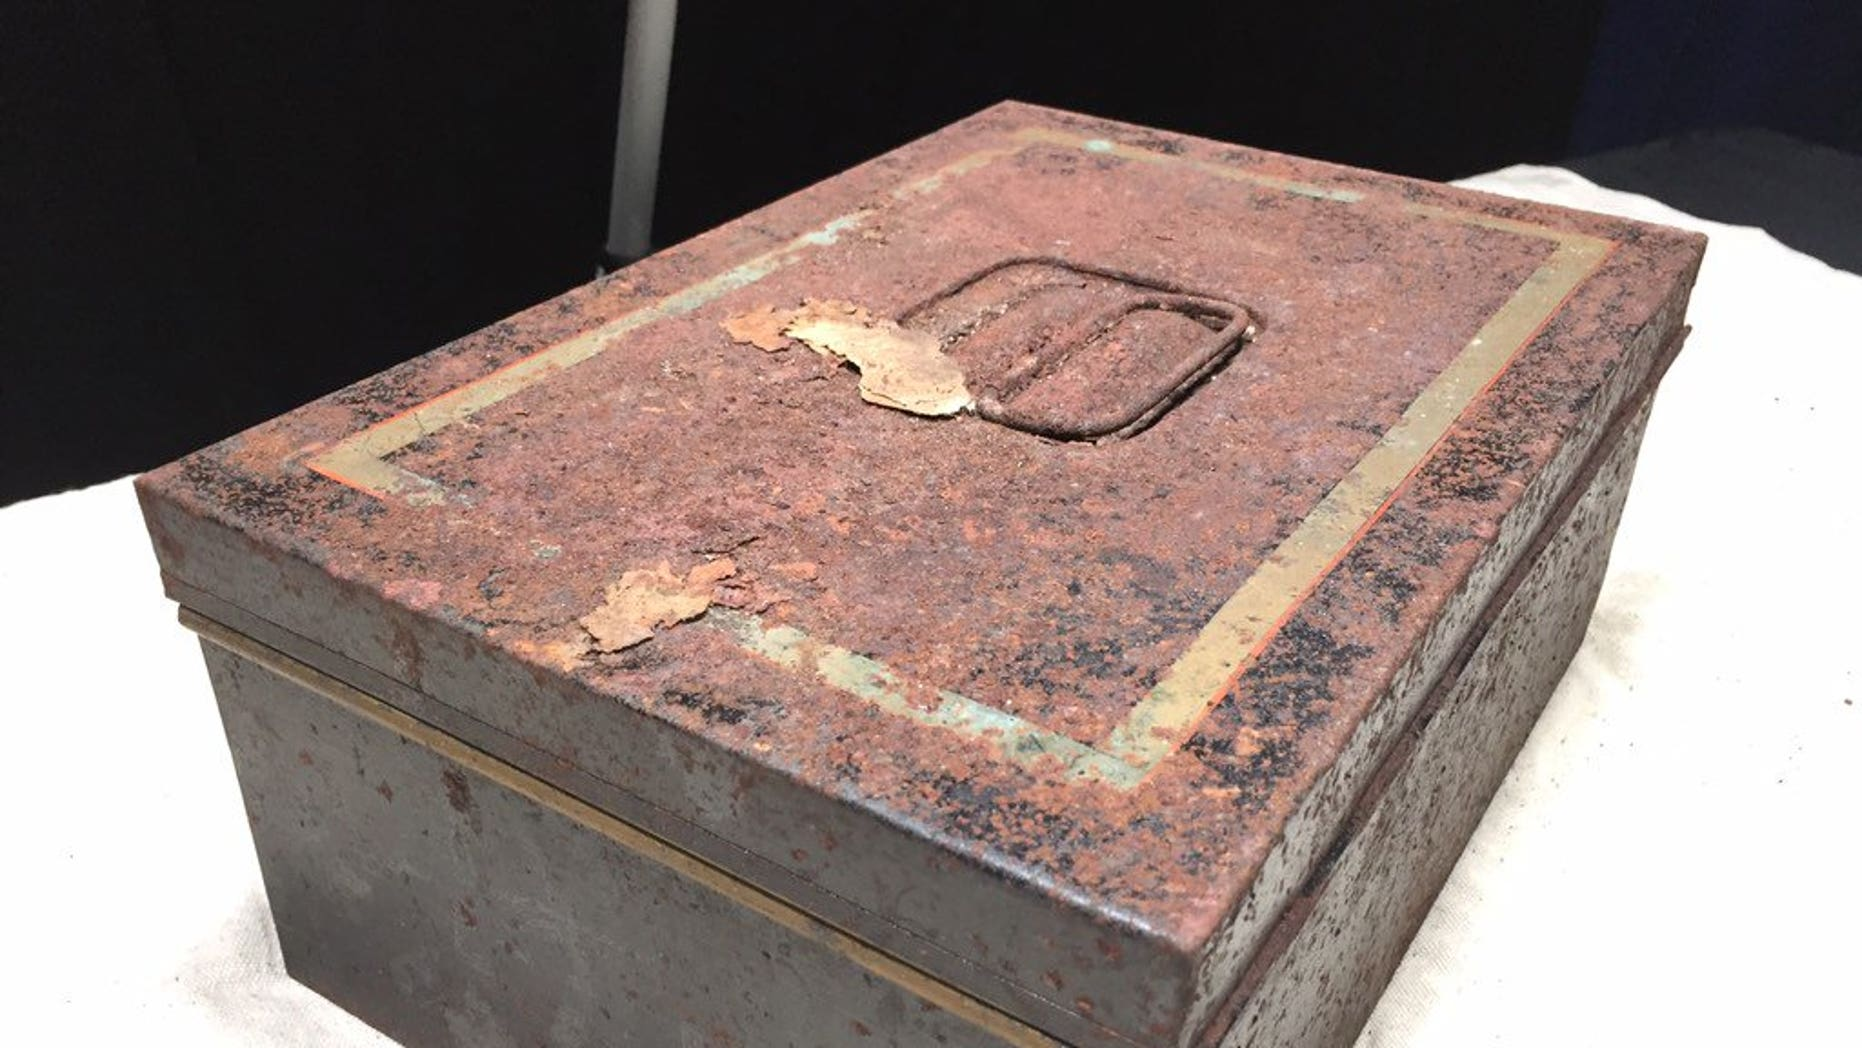 Florida historians opened a time capsule placed in a monument in 1911.